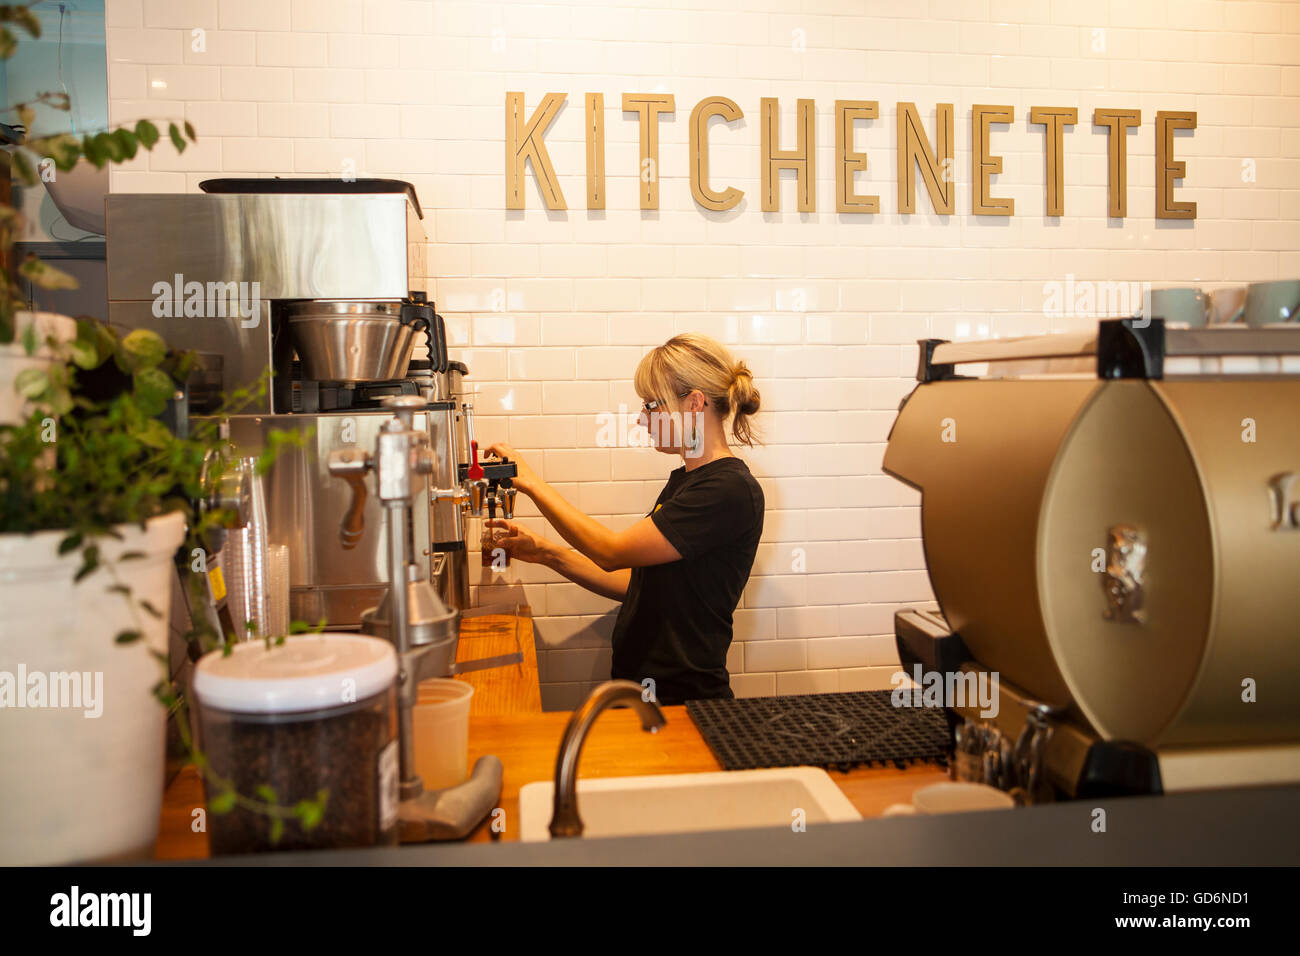 server, Kitchenette Restaurant, Templeton, California - Stock Image